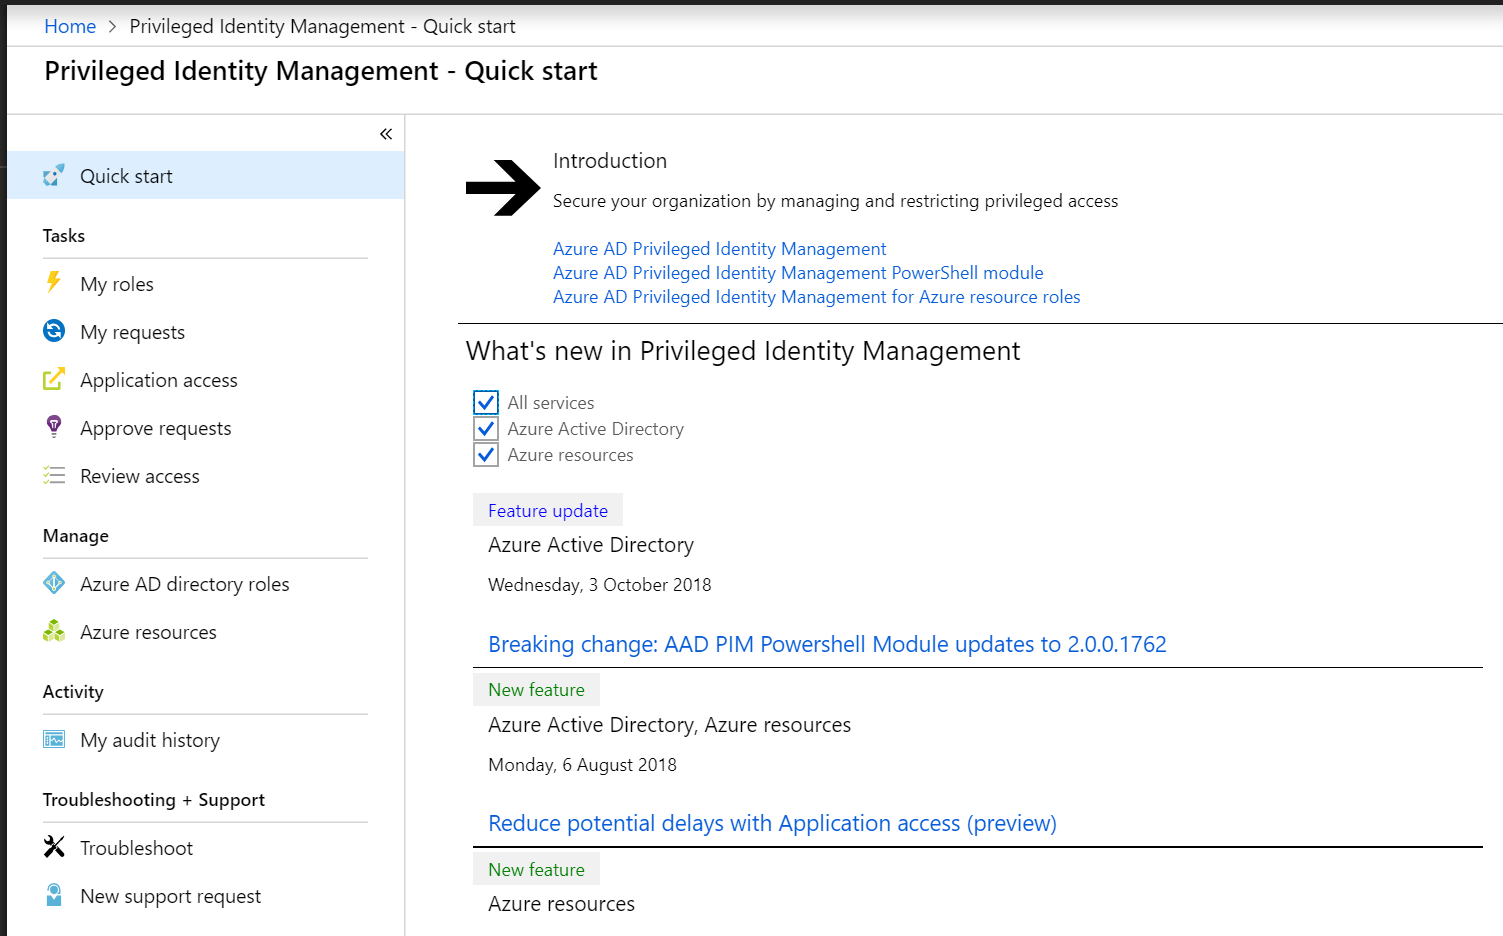 Privileged Identity Management - Quick start